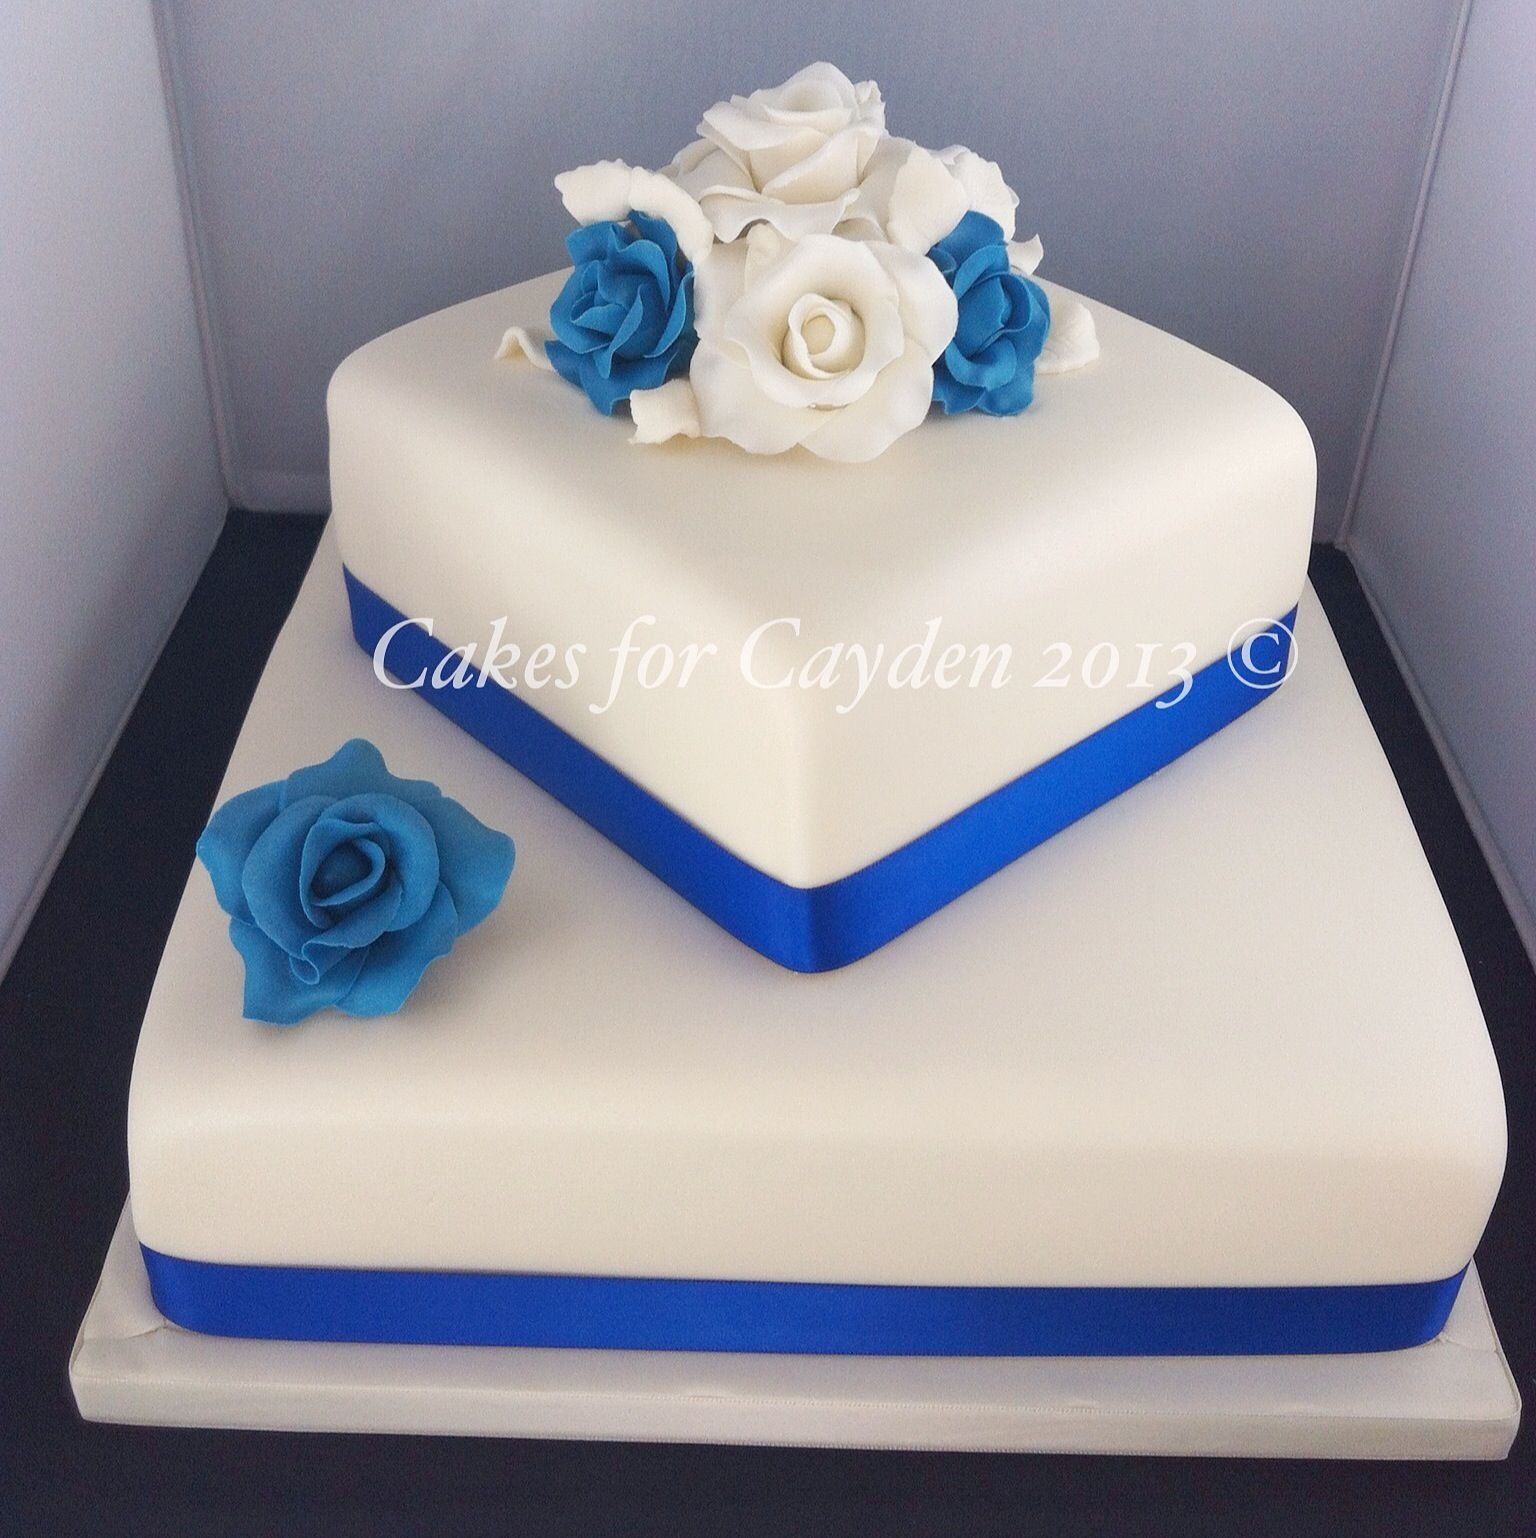 2 Tier Square Ivory And Royal Blues Wedding Cake With Hand Made Sugar Roses Square Wedding Cakes Tiered Wedding Cake Square Wedding Cakes Simple